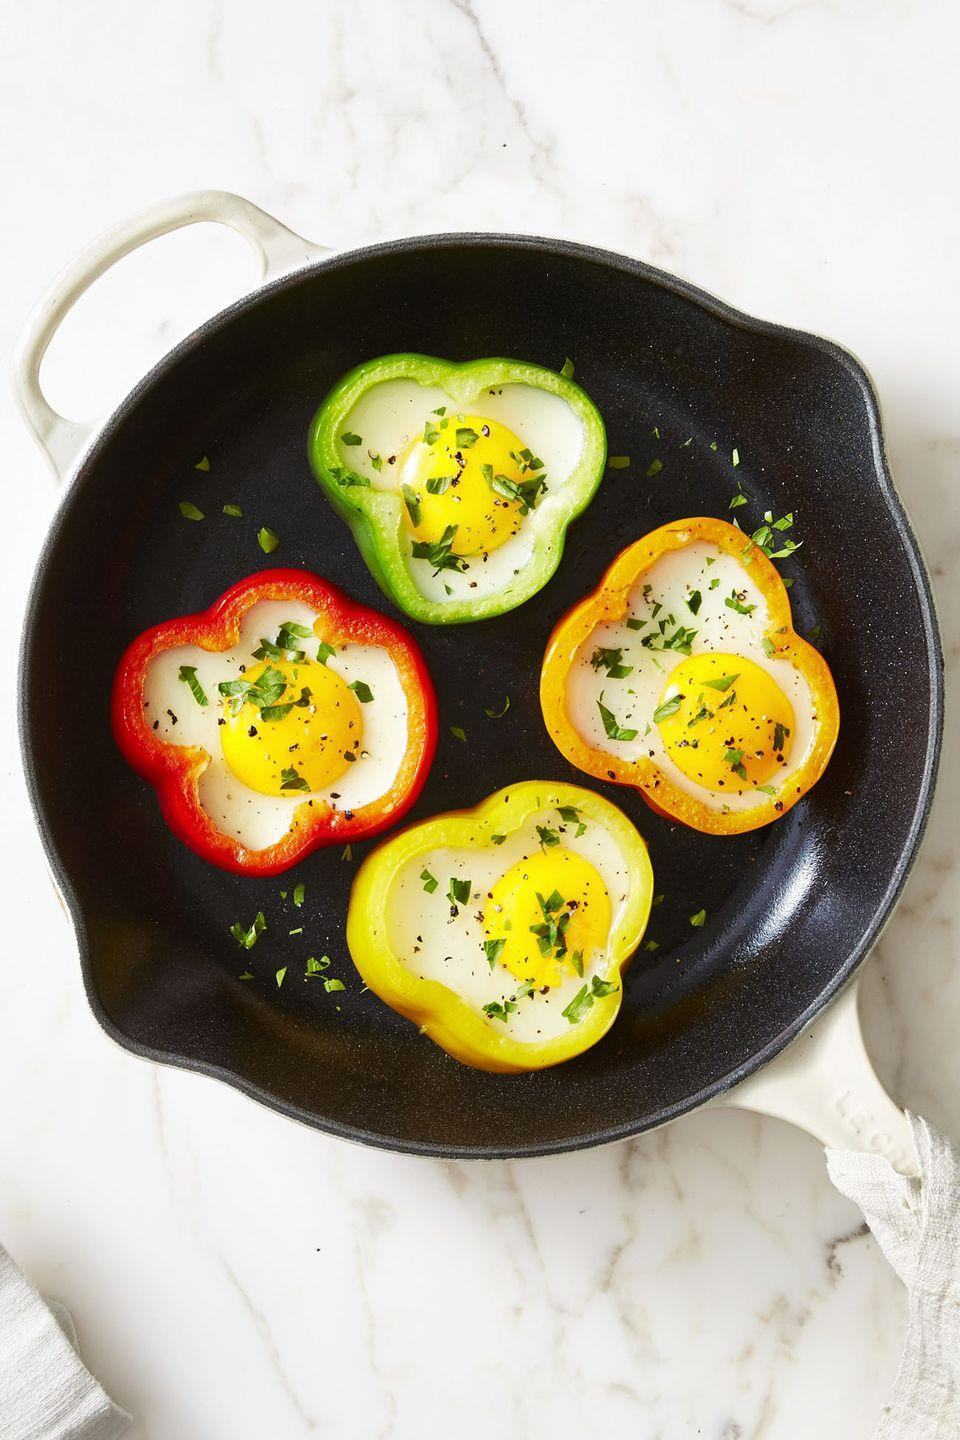 """<p>Trust us: Your morning will be a whole lot sunnier after catching a glimpse (and taste!) of these. </p><p><em><a href=""""https://www.goodhousekeeping.com/food-recipes/a42847/flower-power-sunny-side-eggs-recipe/"""" rel=""""nofollow noopener"""" target=""""_blank"""" data-ylk=""""slk:Get the recipe for Flower Power Sunny-Side Eggs »"""" class=""""link rapid-noclick-resp"""">Get the recipe for Flower Power Sunny-Side Eggs »</a></em></p>"""